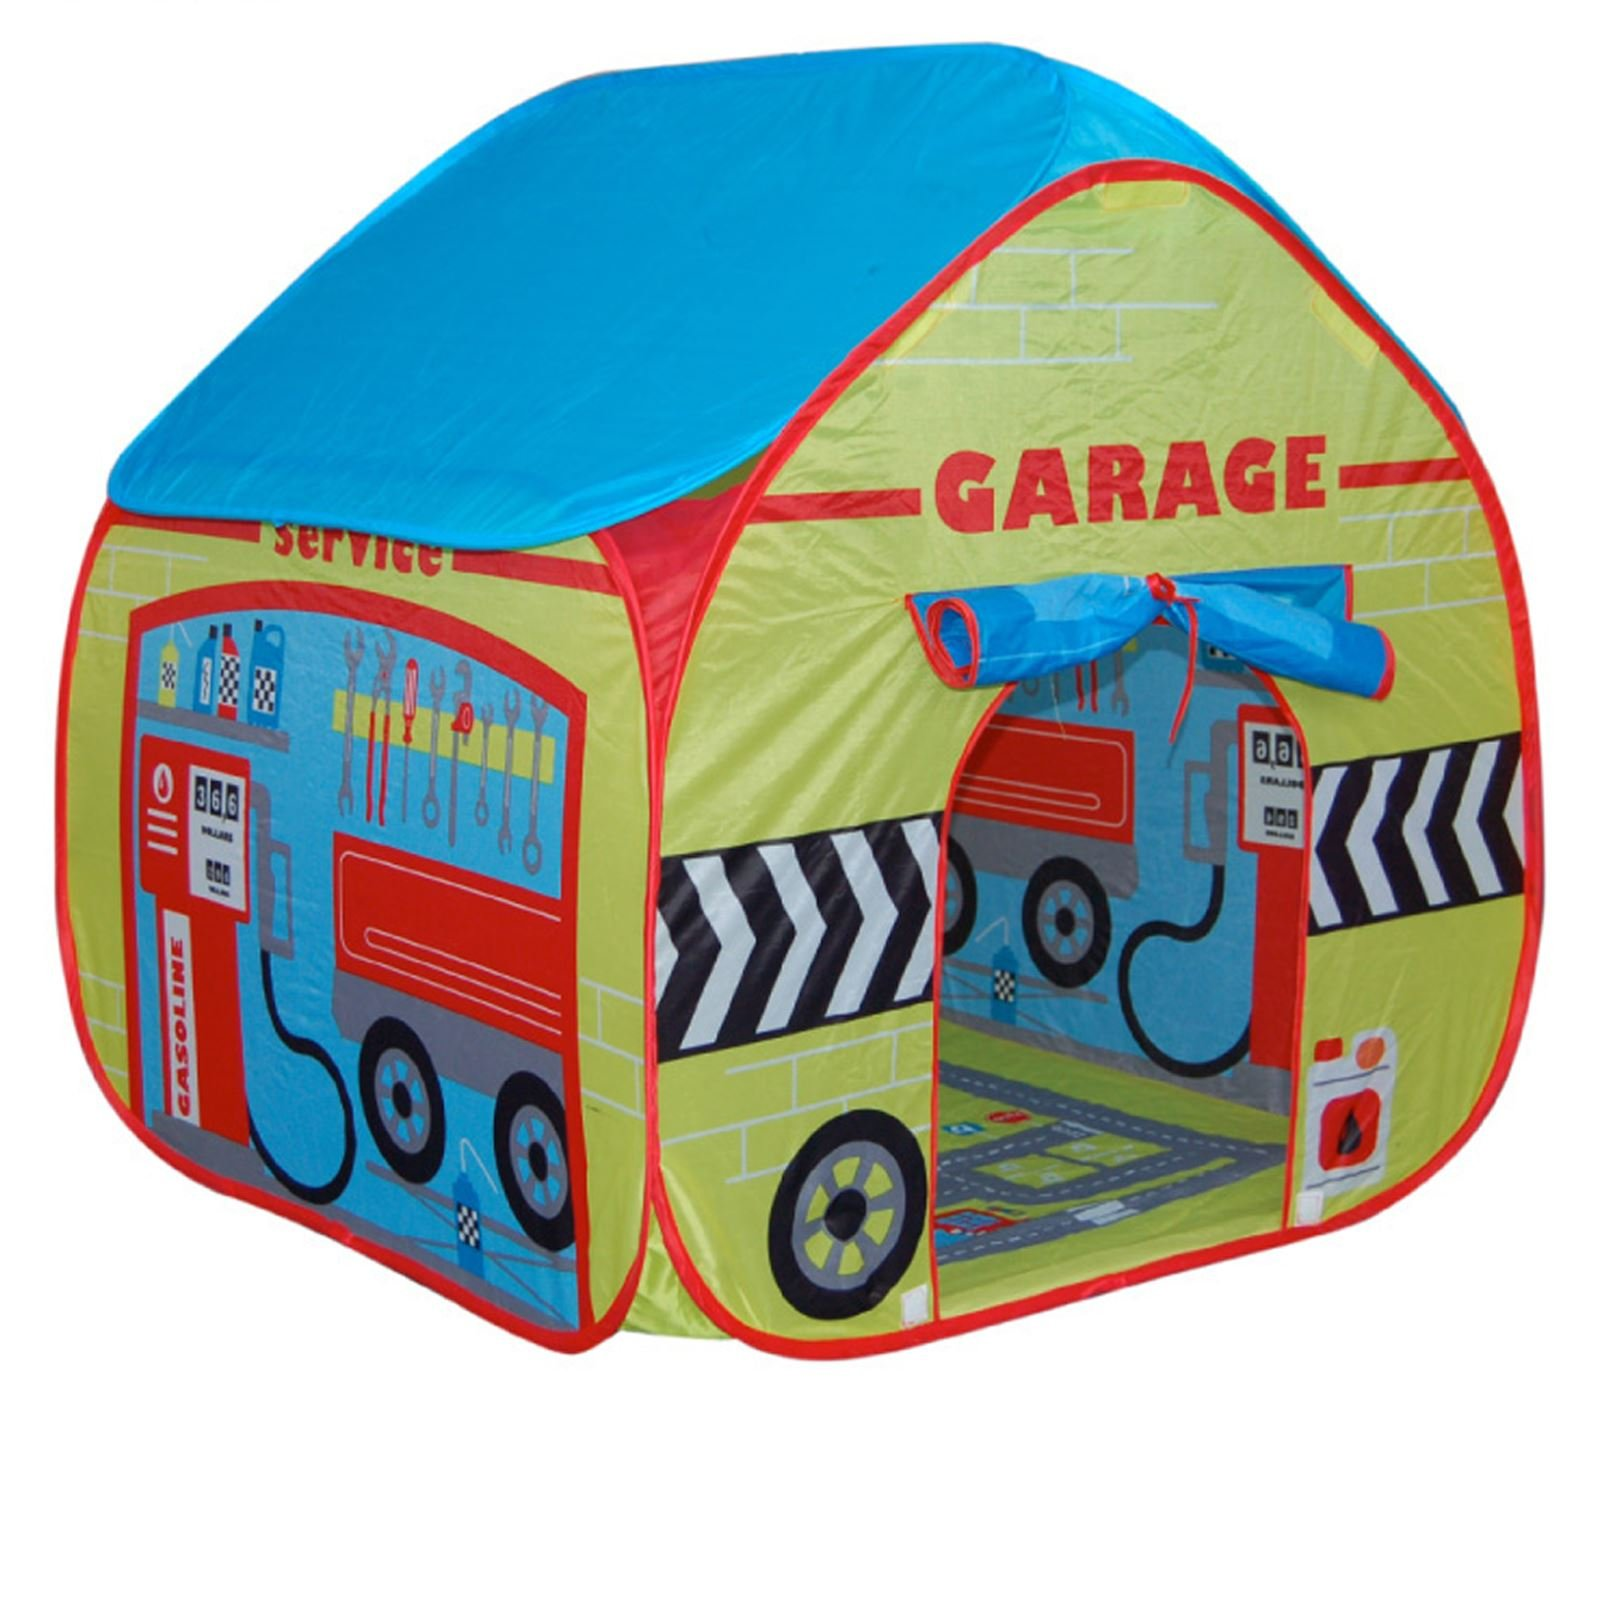 Childrens Pop Up Play Tent Designed like a Car Garage with a Unique Printed Play Floor : Boys Toy Play Tent / Playhouse / Den